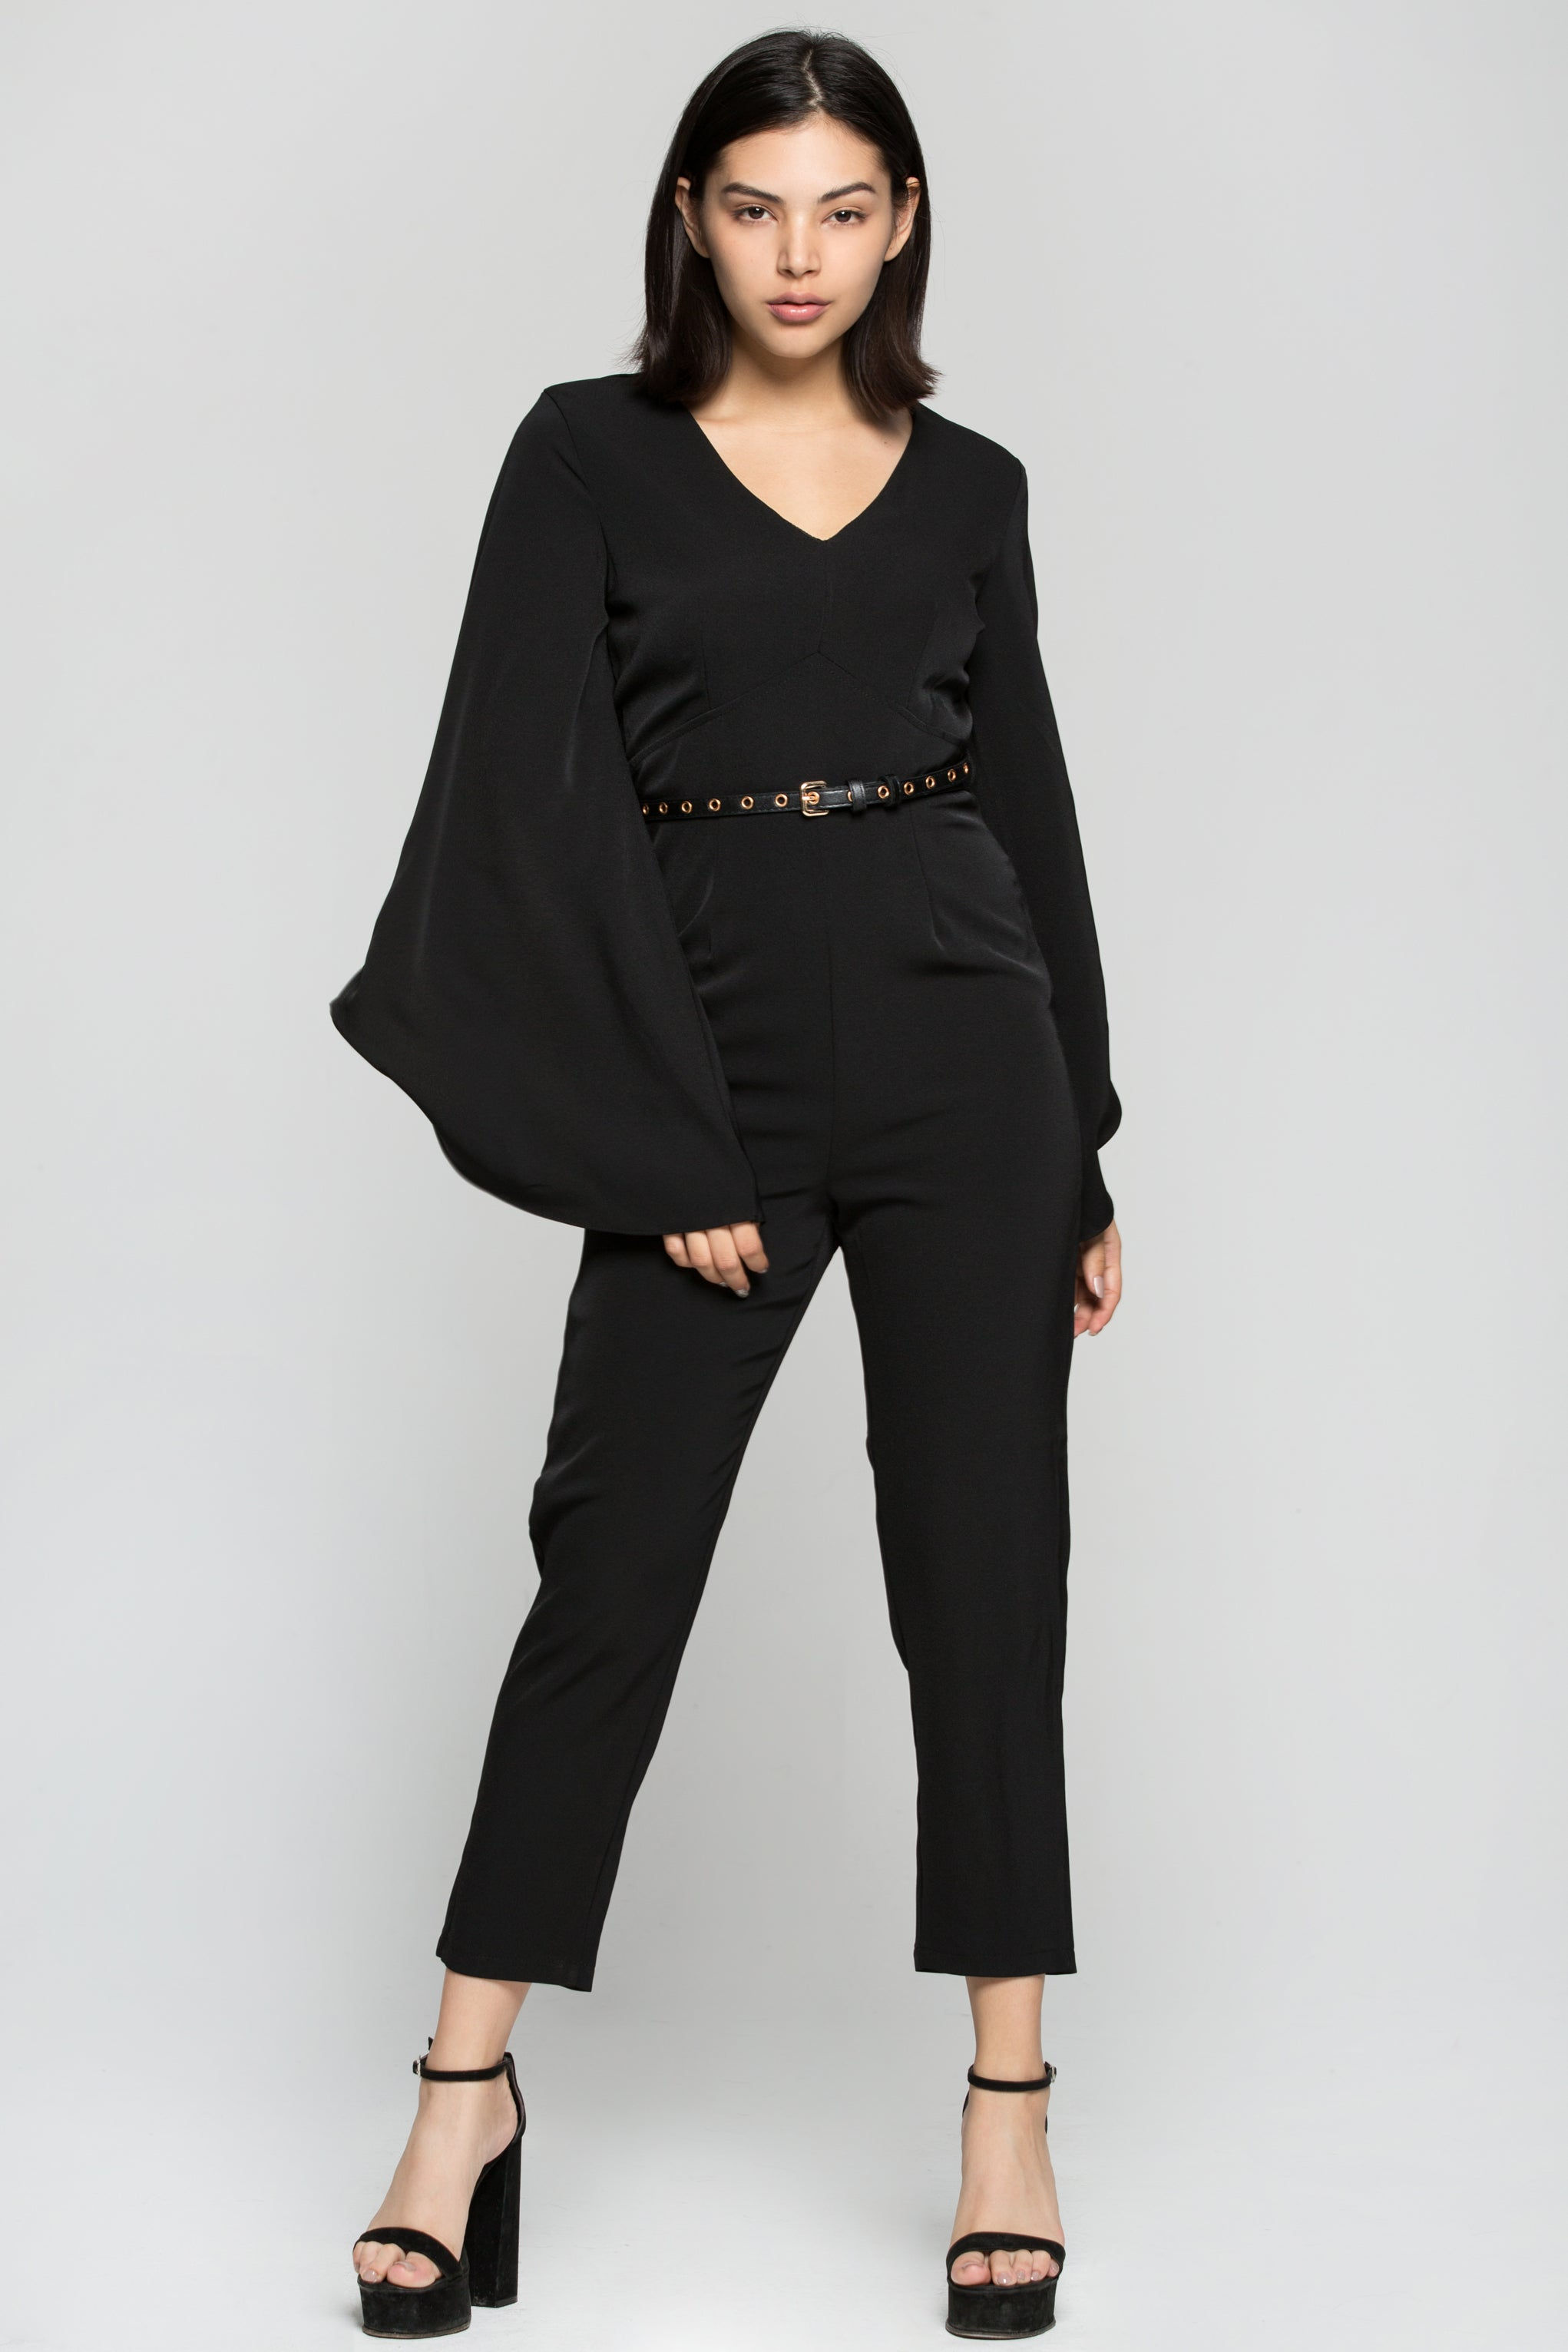 Black Solid Bell Sleeves Jumpsuit with Belt